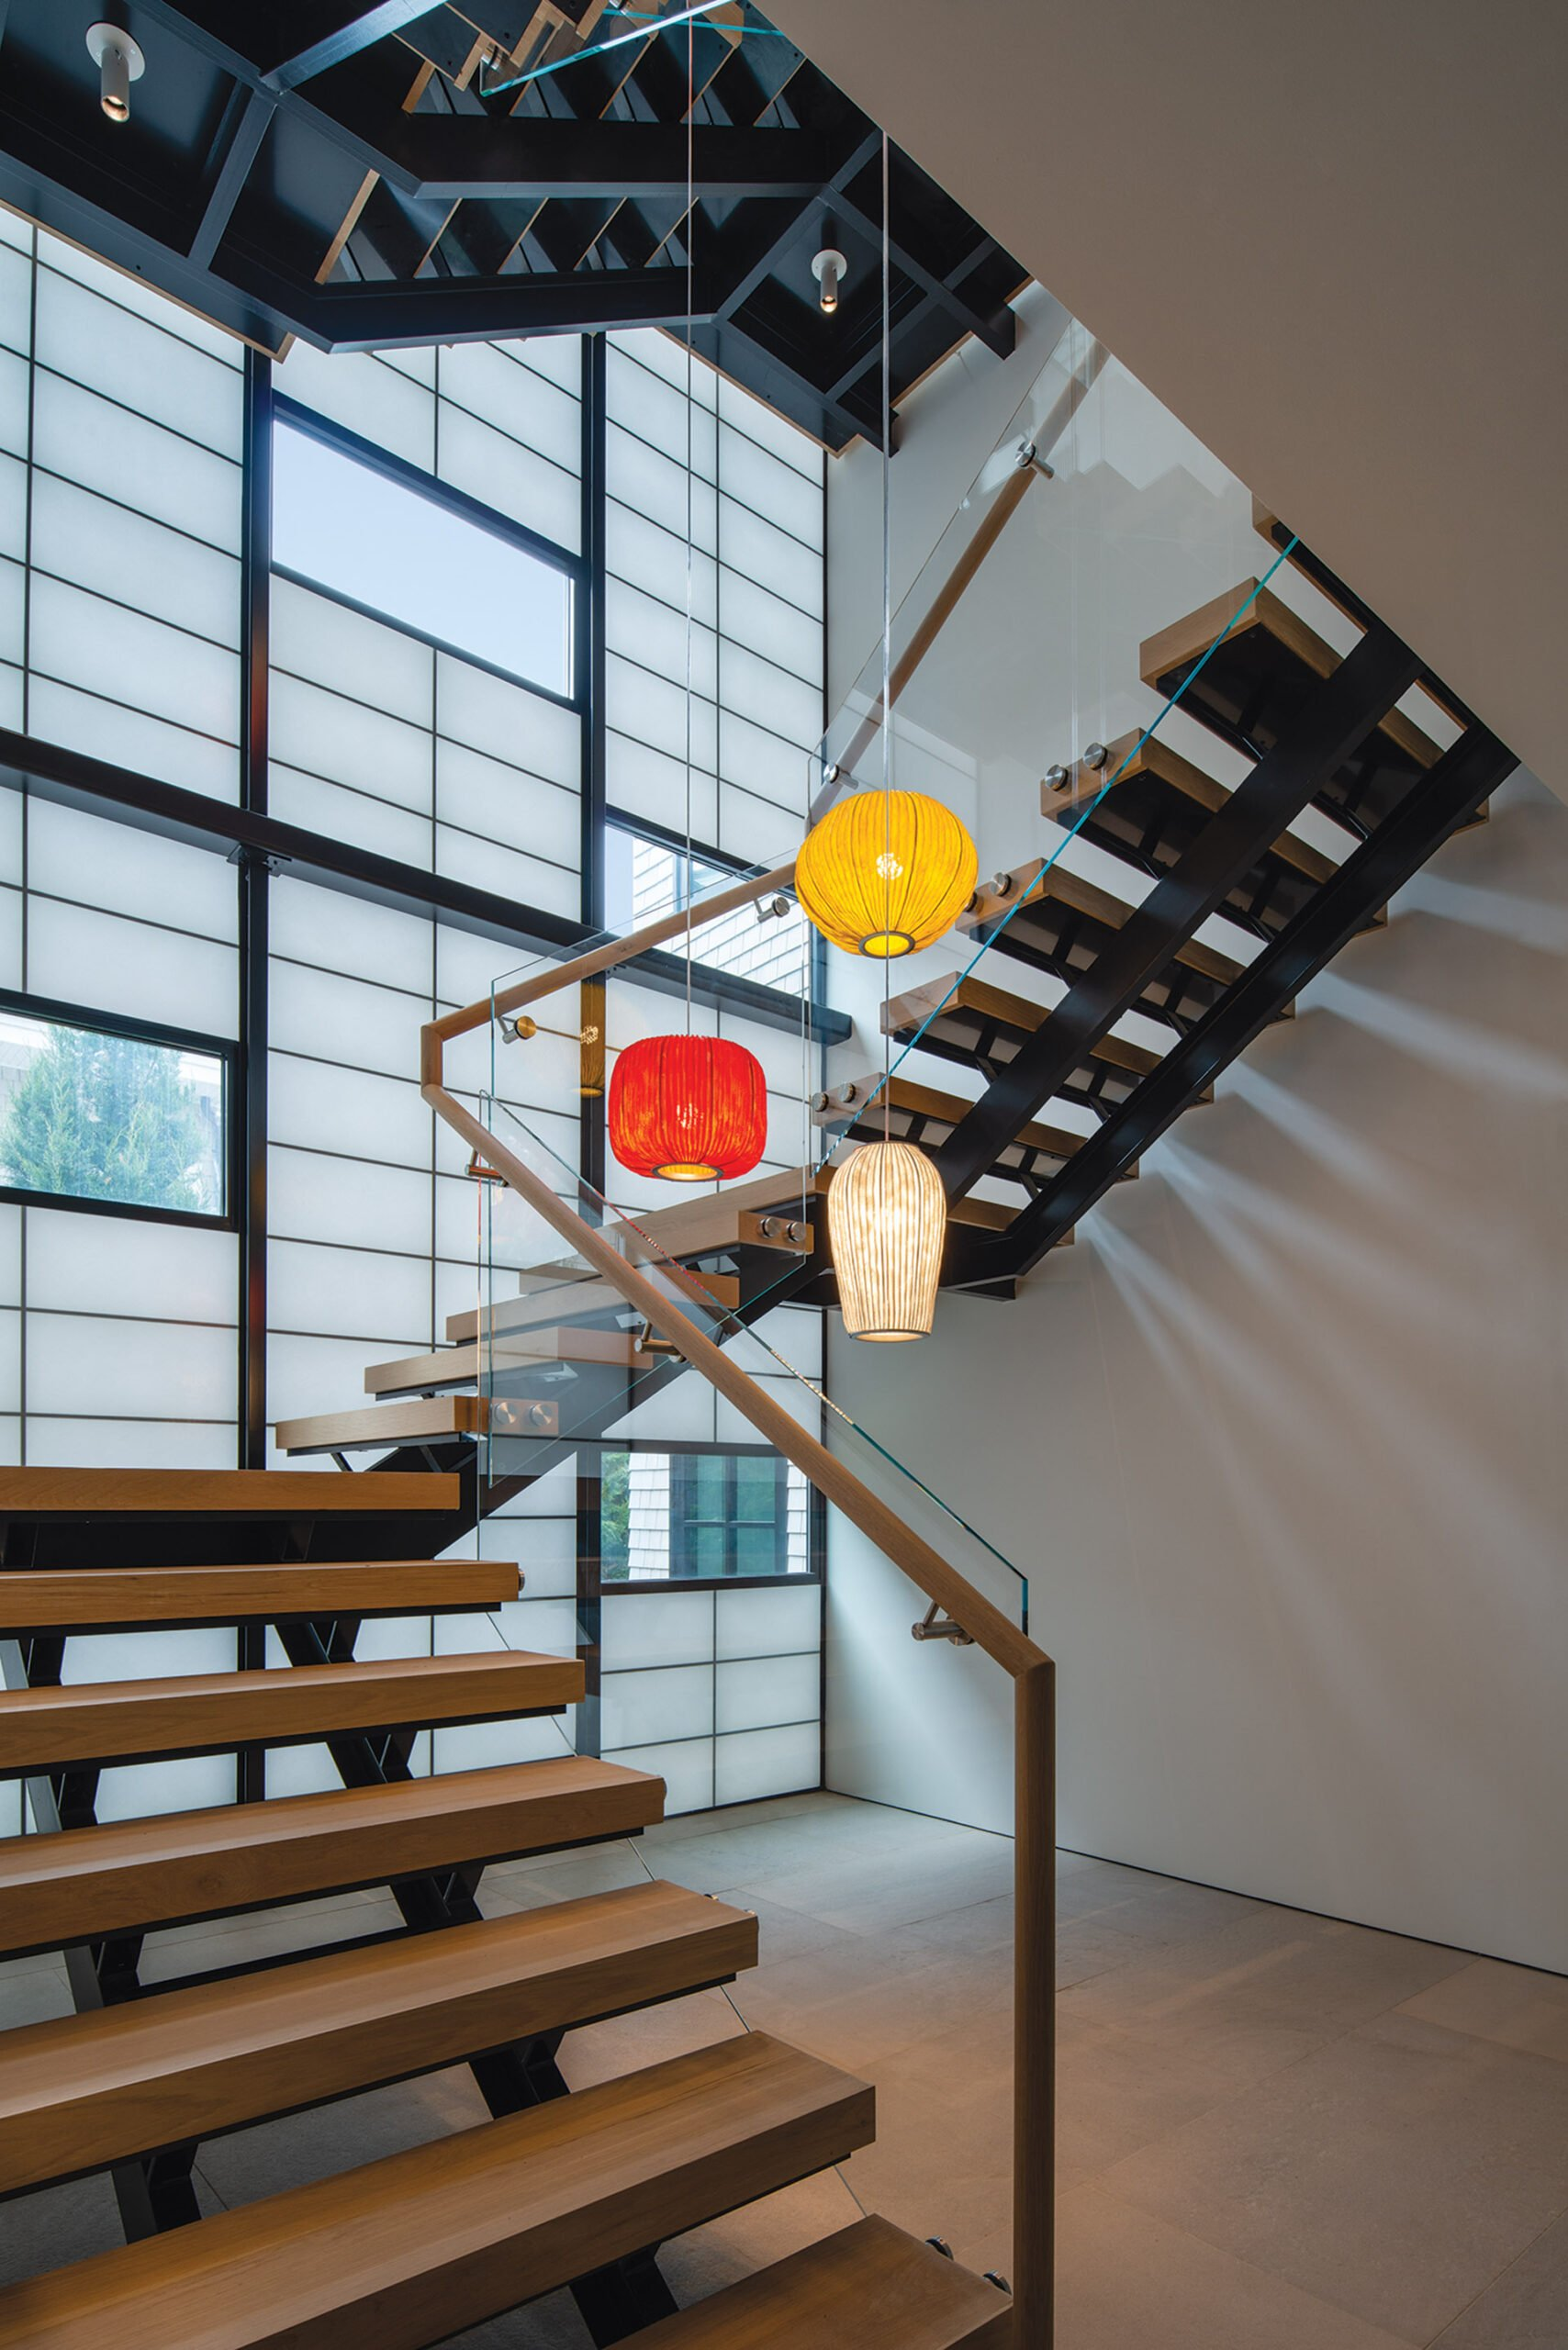 Kalwall panels maintain privacy while flooding the stairwell with light.